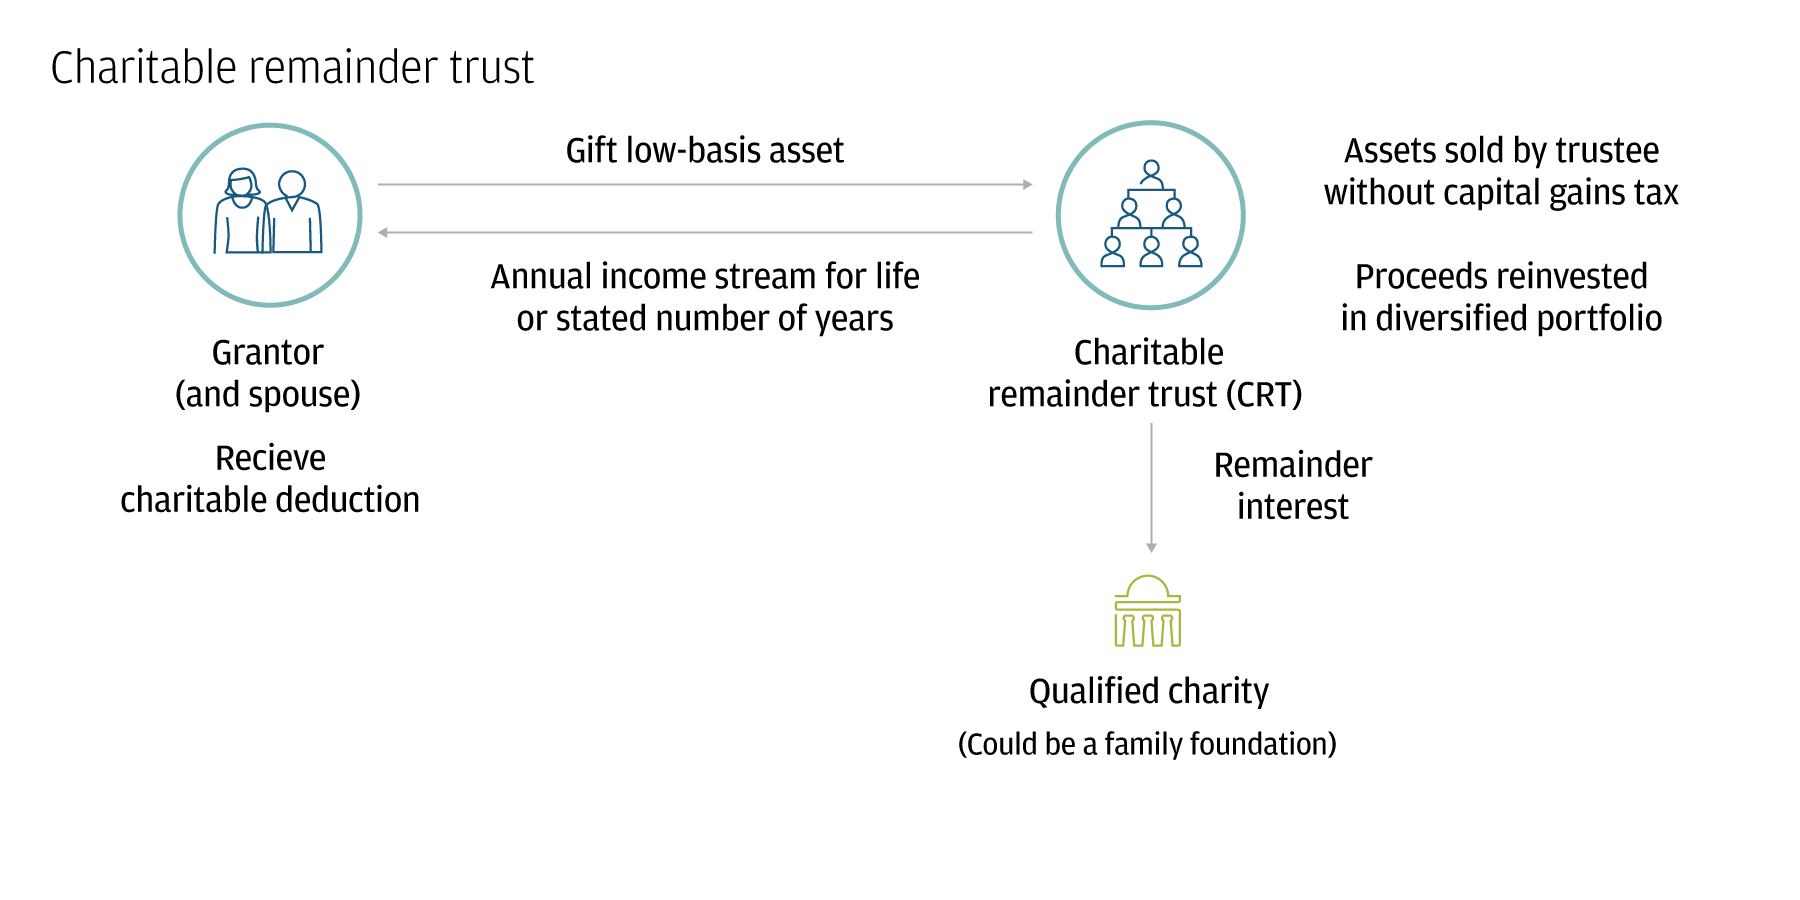 This diagram illustrates the establishment and workings of a charitable remainder trust.